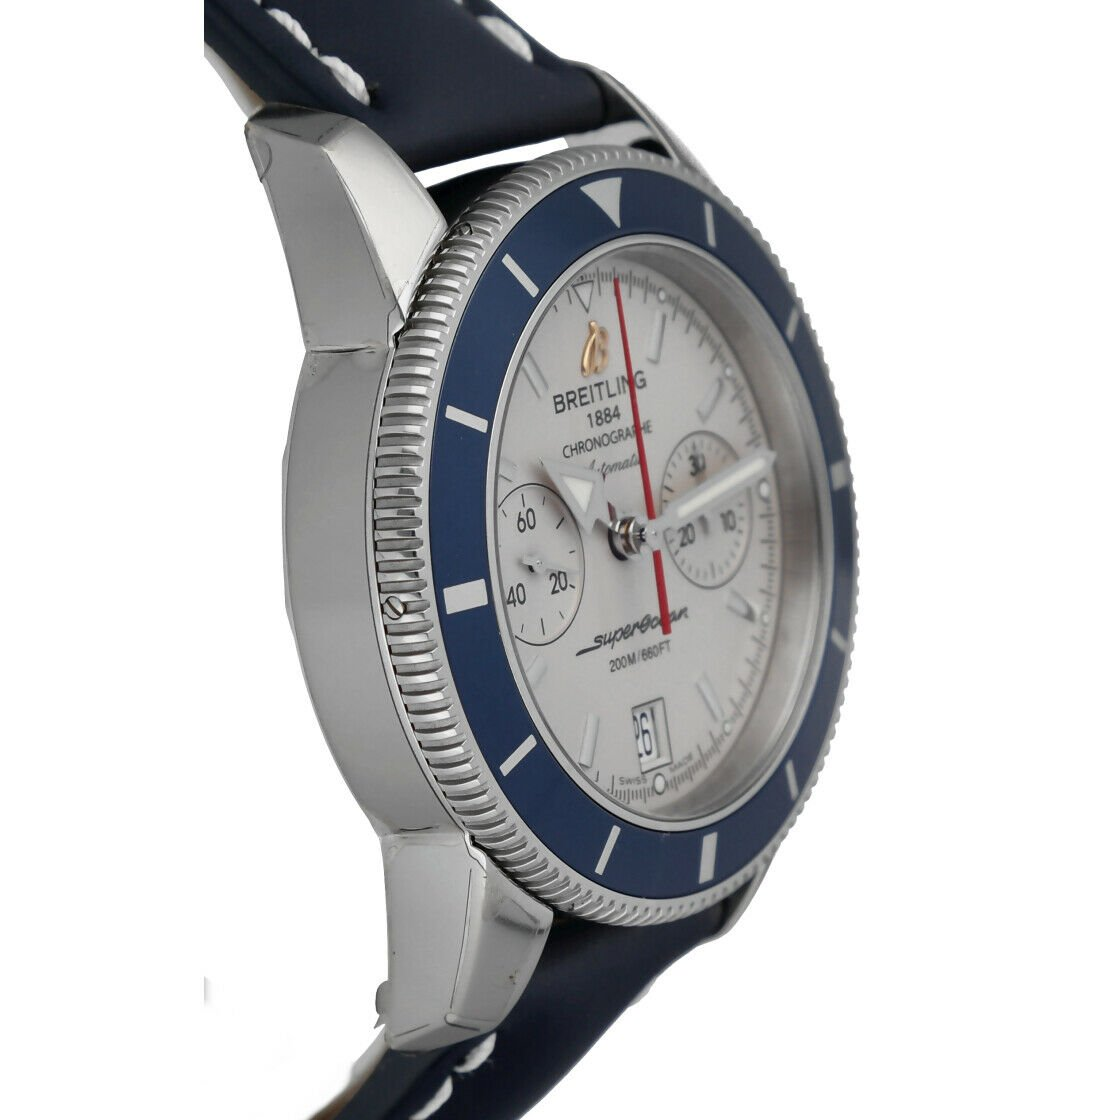 Breitling A23370 Superocean Heritage 44 Silver Chrono Leather Auto Mens Watch 114428920667 4